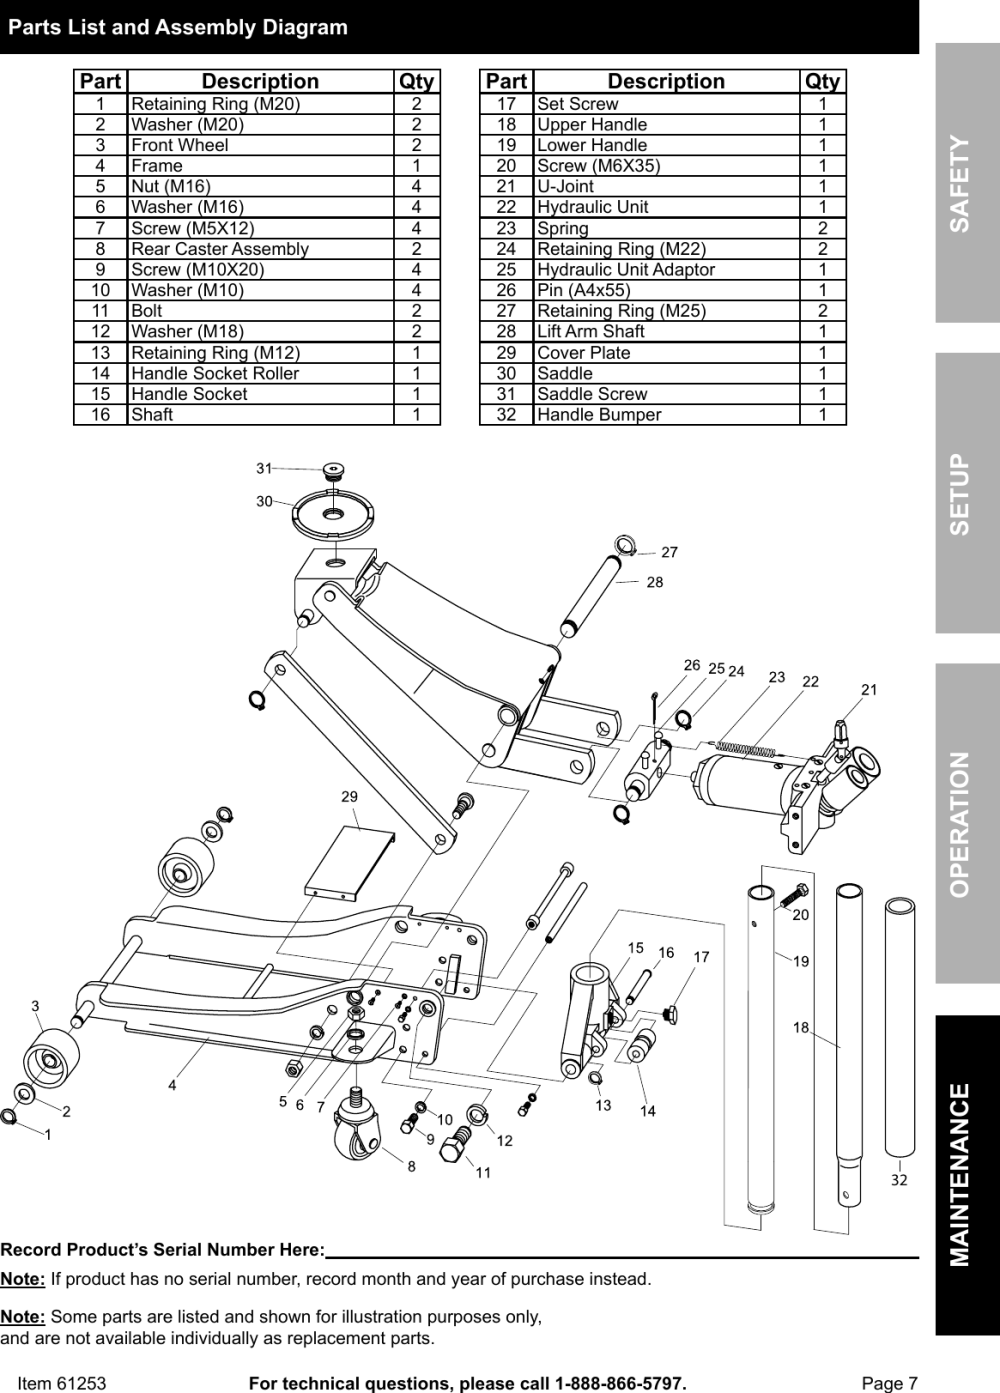 medium resolution of page 7 of 8 manual for the 61253 3 ton low profile steel heavy duty